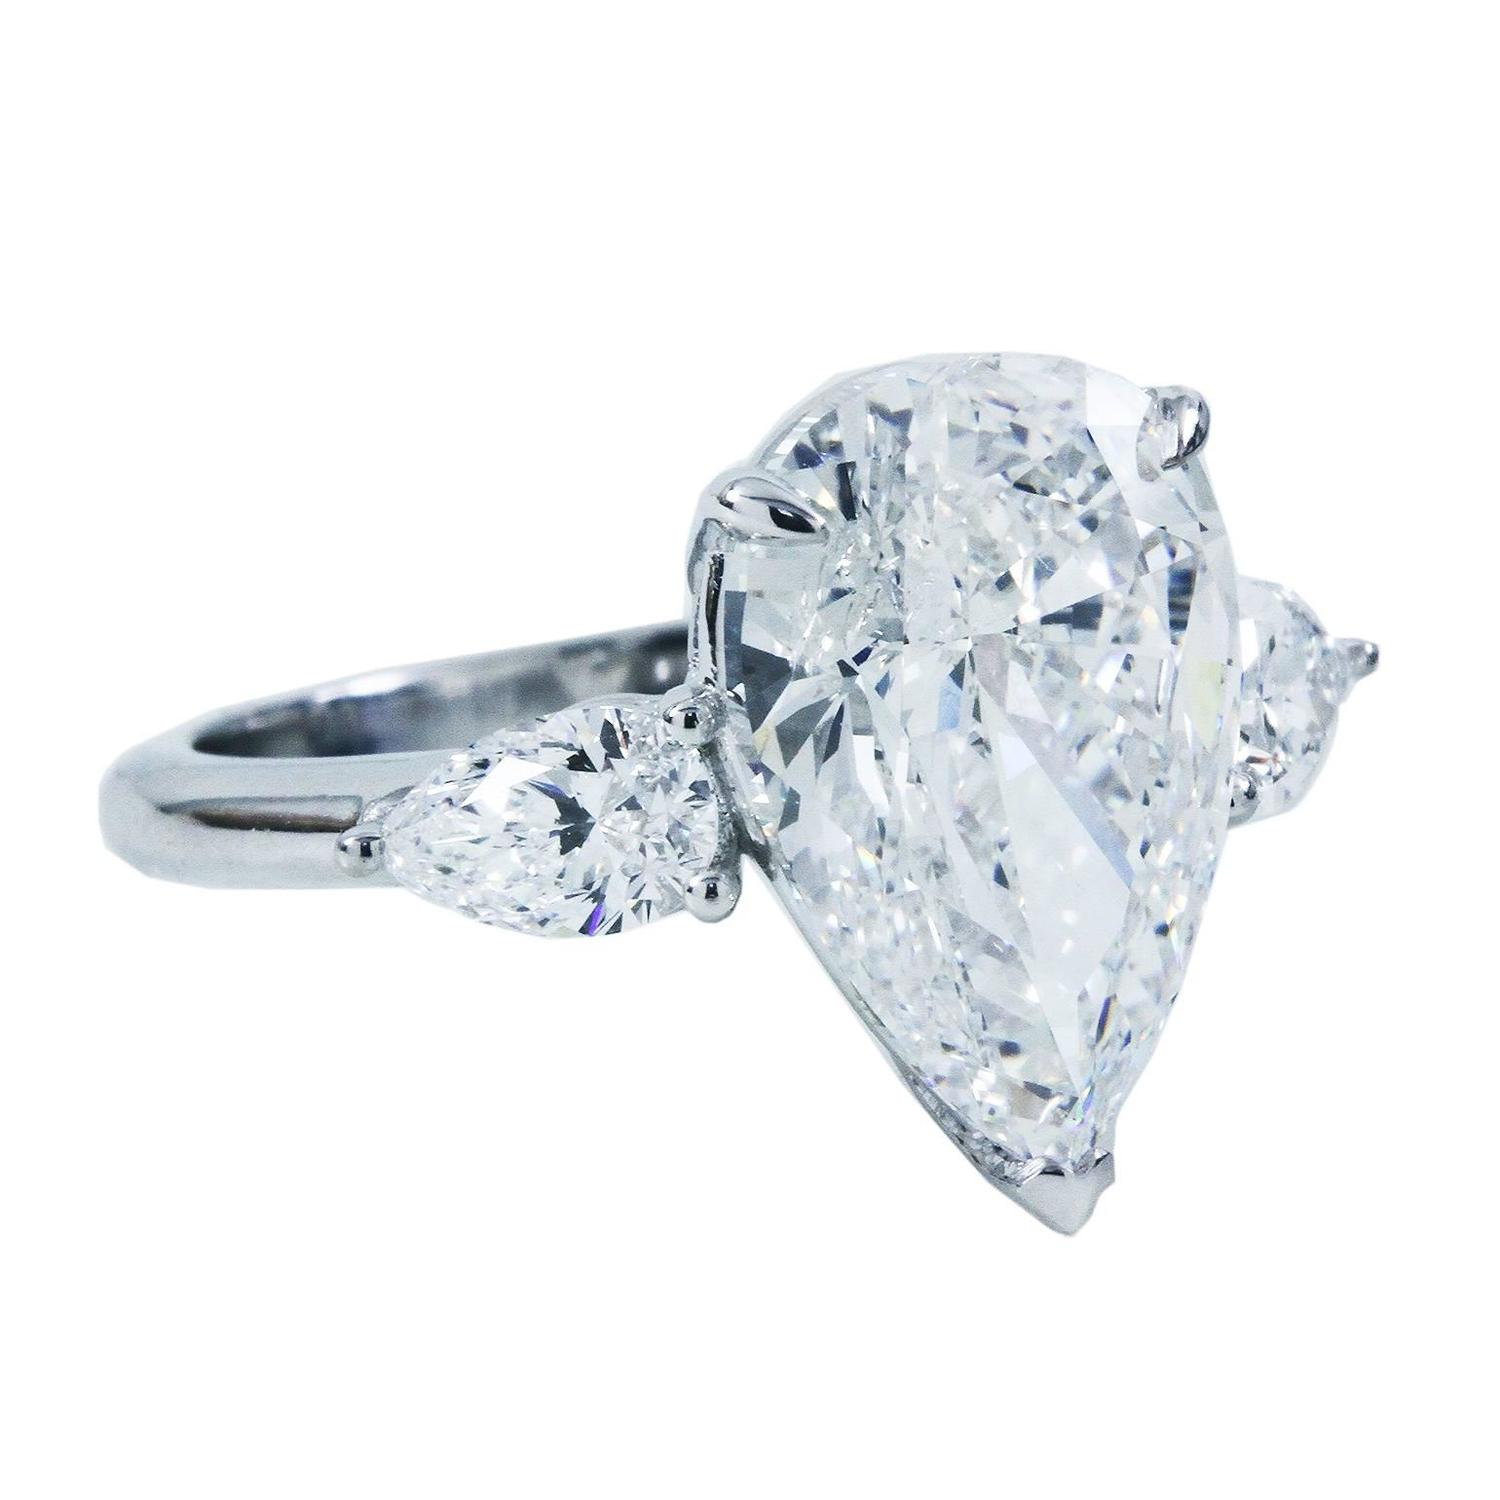 5 88 Carat GIA Pear Diamond Gold 3 Stone Engagement Ring For Sale at 1stdibs